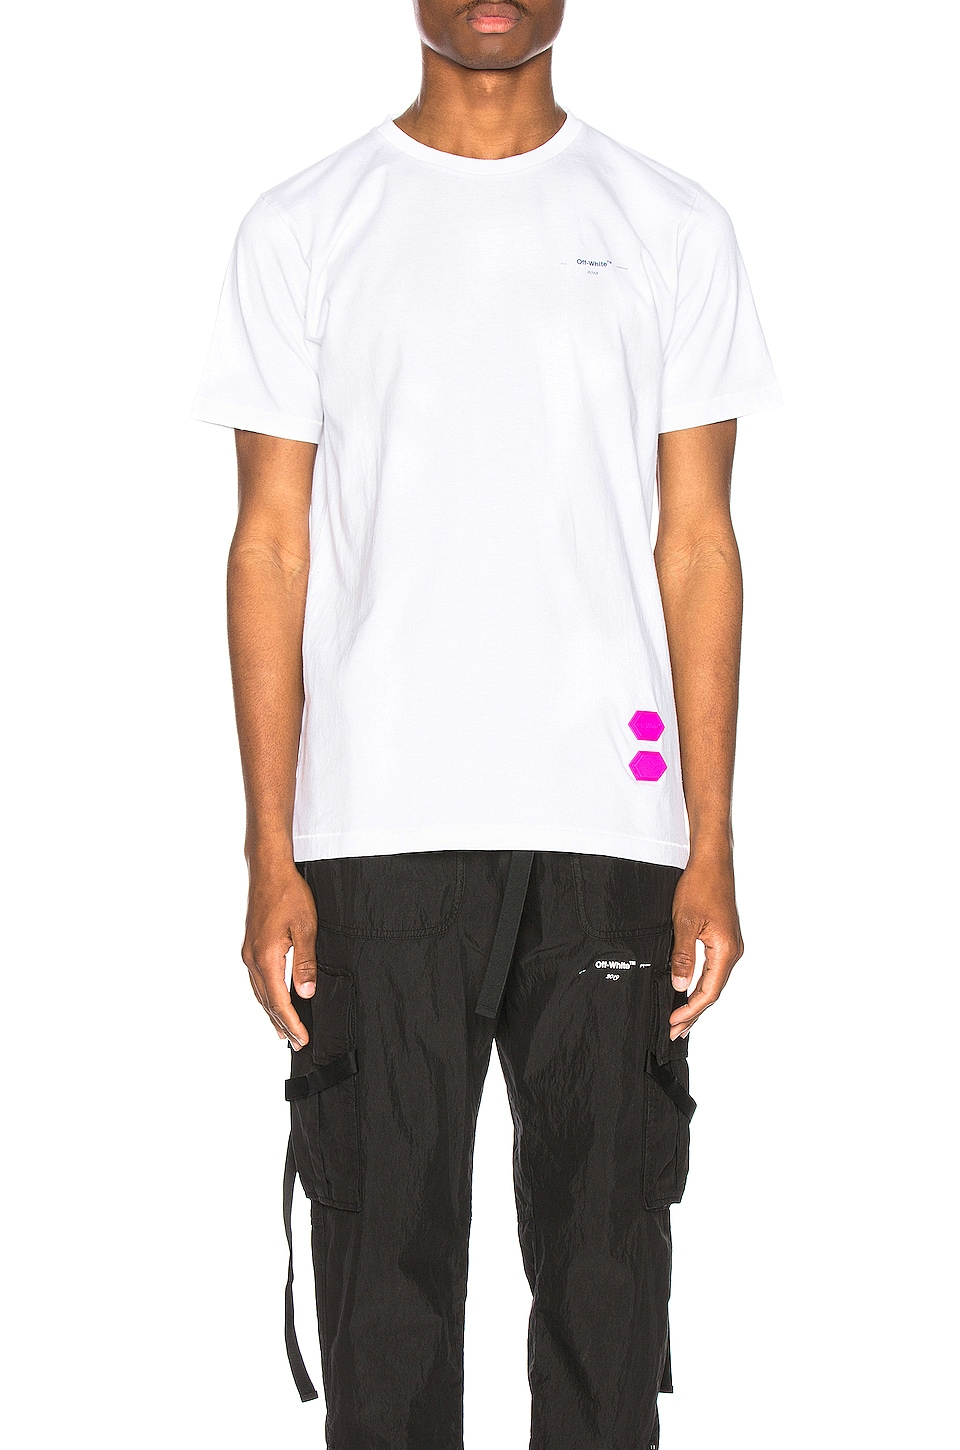 OFF-WHITE EXCLUSIVE Short Sleeve Tee in White